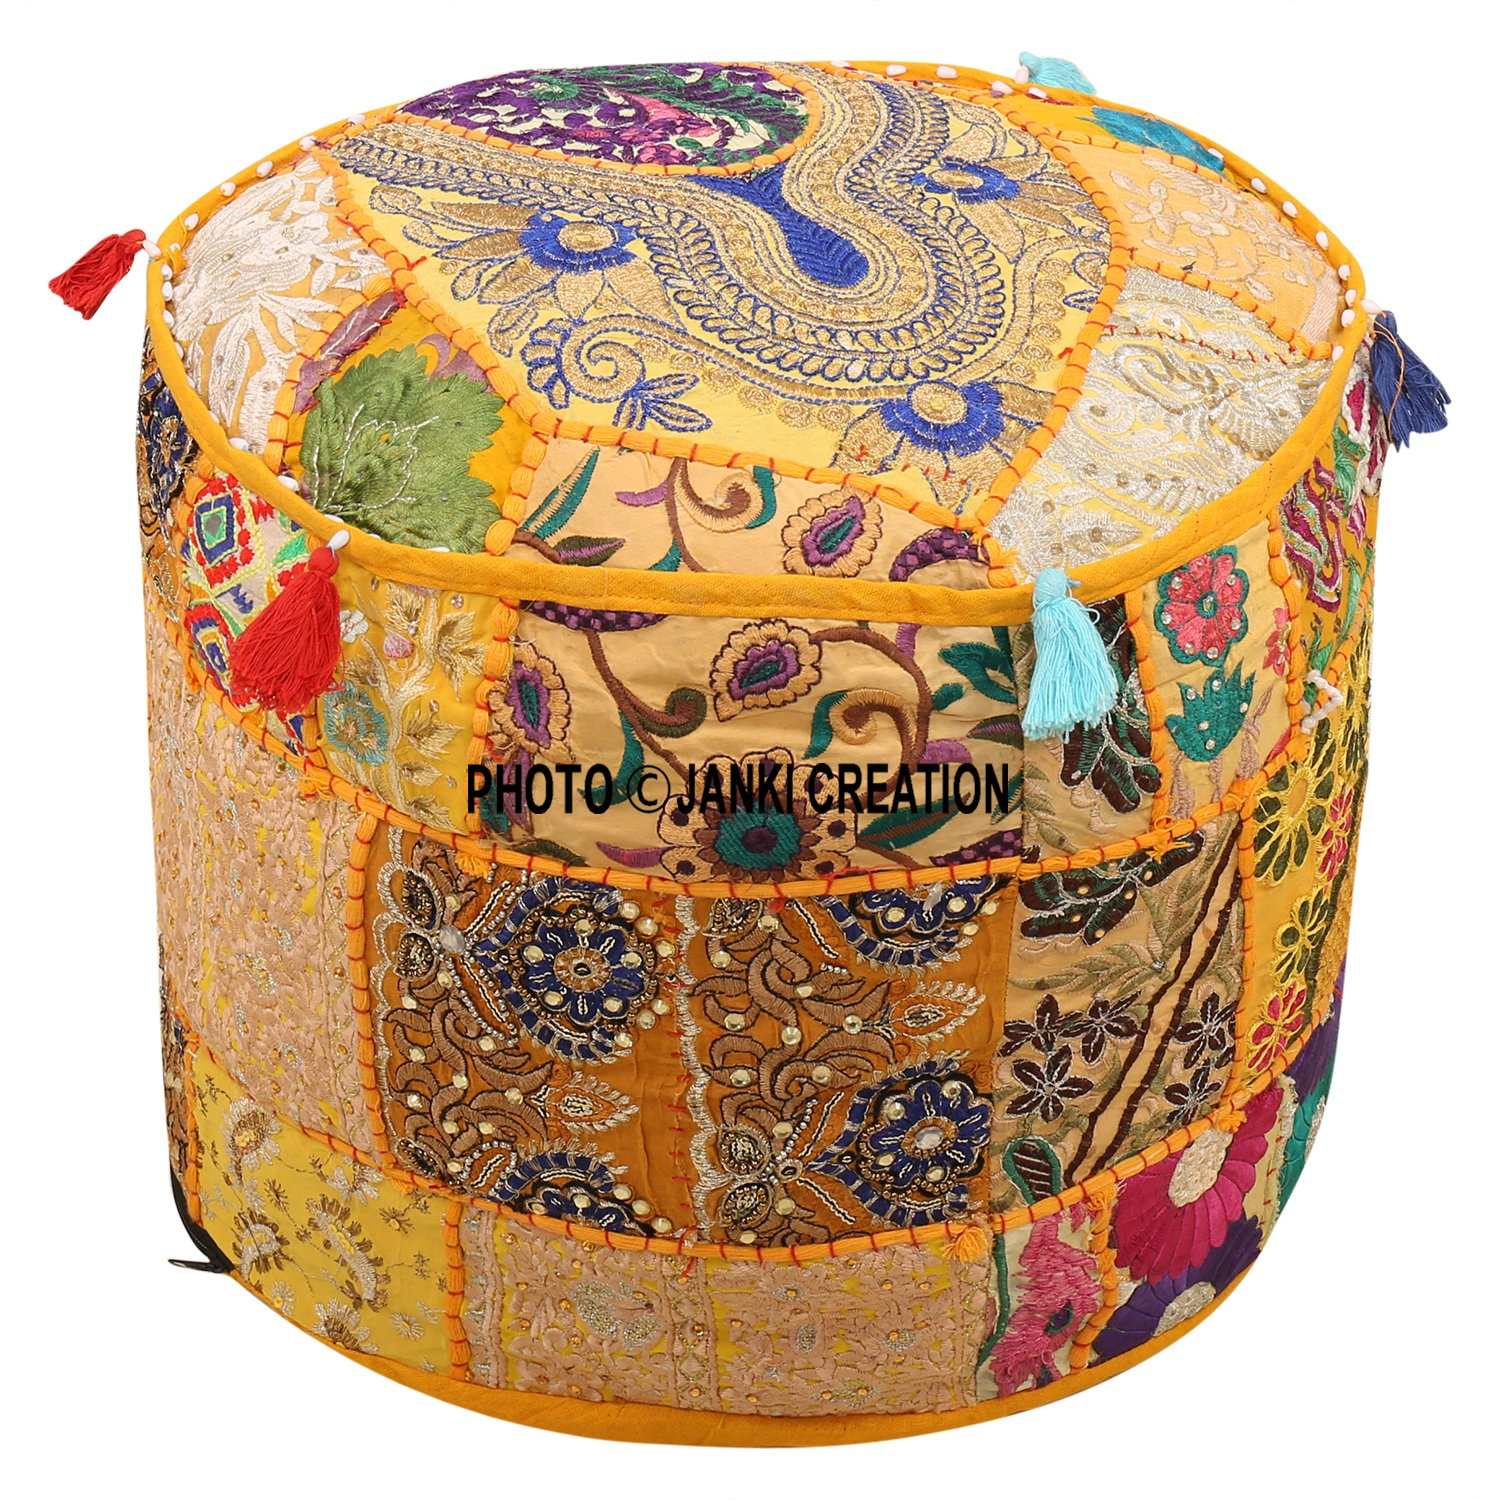 Indian Pouffe Footstool Cover Round Patchwork Embroidered Pouf Ottoman Cover Yellow Cotton Floral Traditional (18x18x13) Embroidered Ottoman Stool Pouf Cover Turquoise Green Floral Hassock Pouffe Case Janki Creation